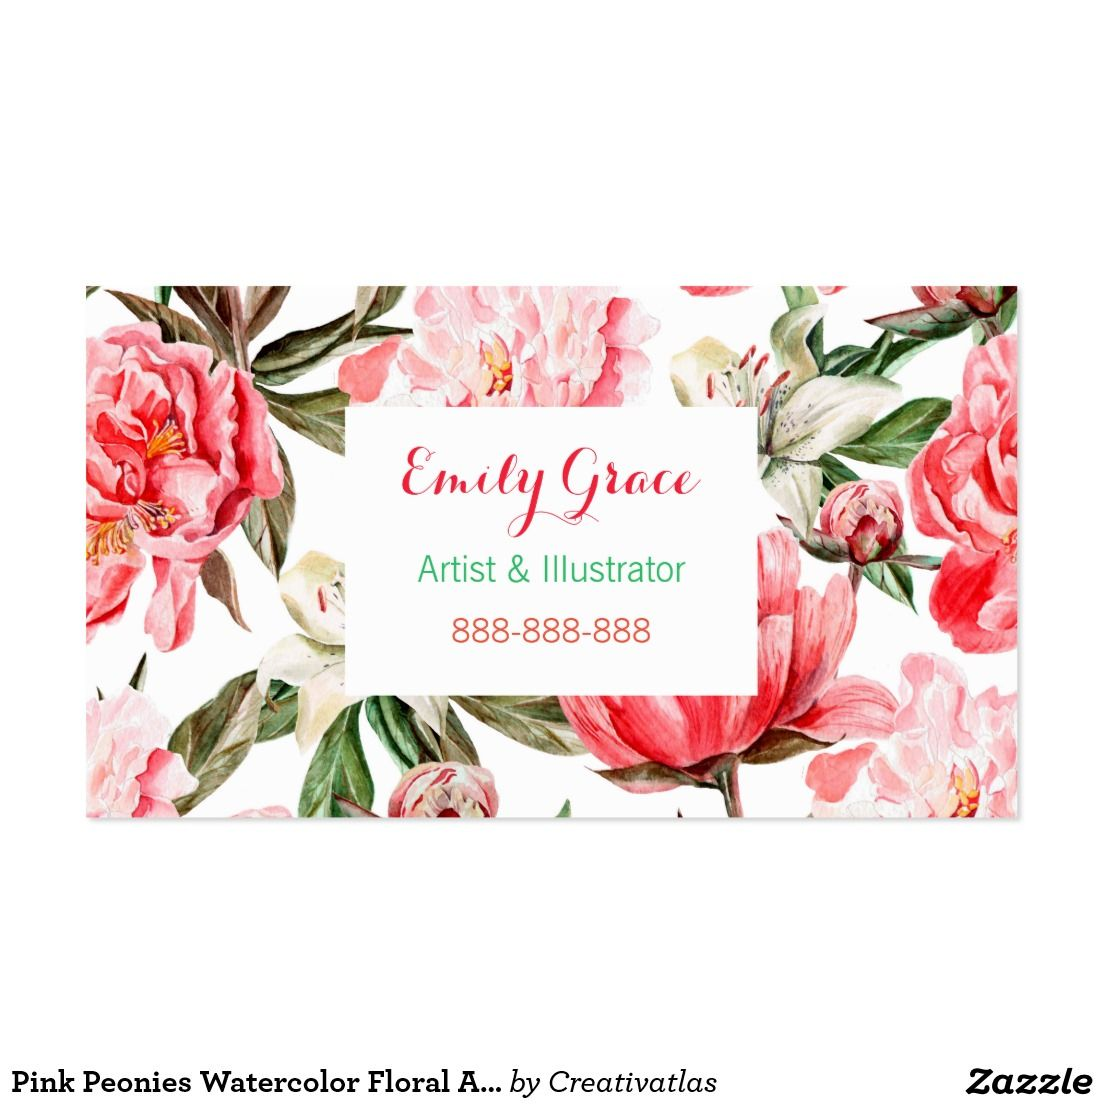 Floral Watercolor Peony Flowers Painted Business Card | Business cards